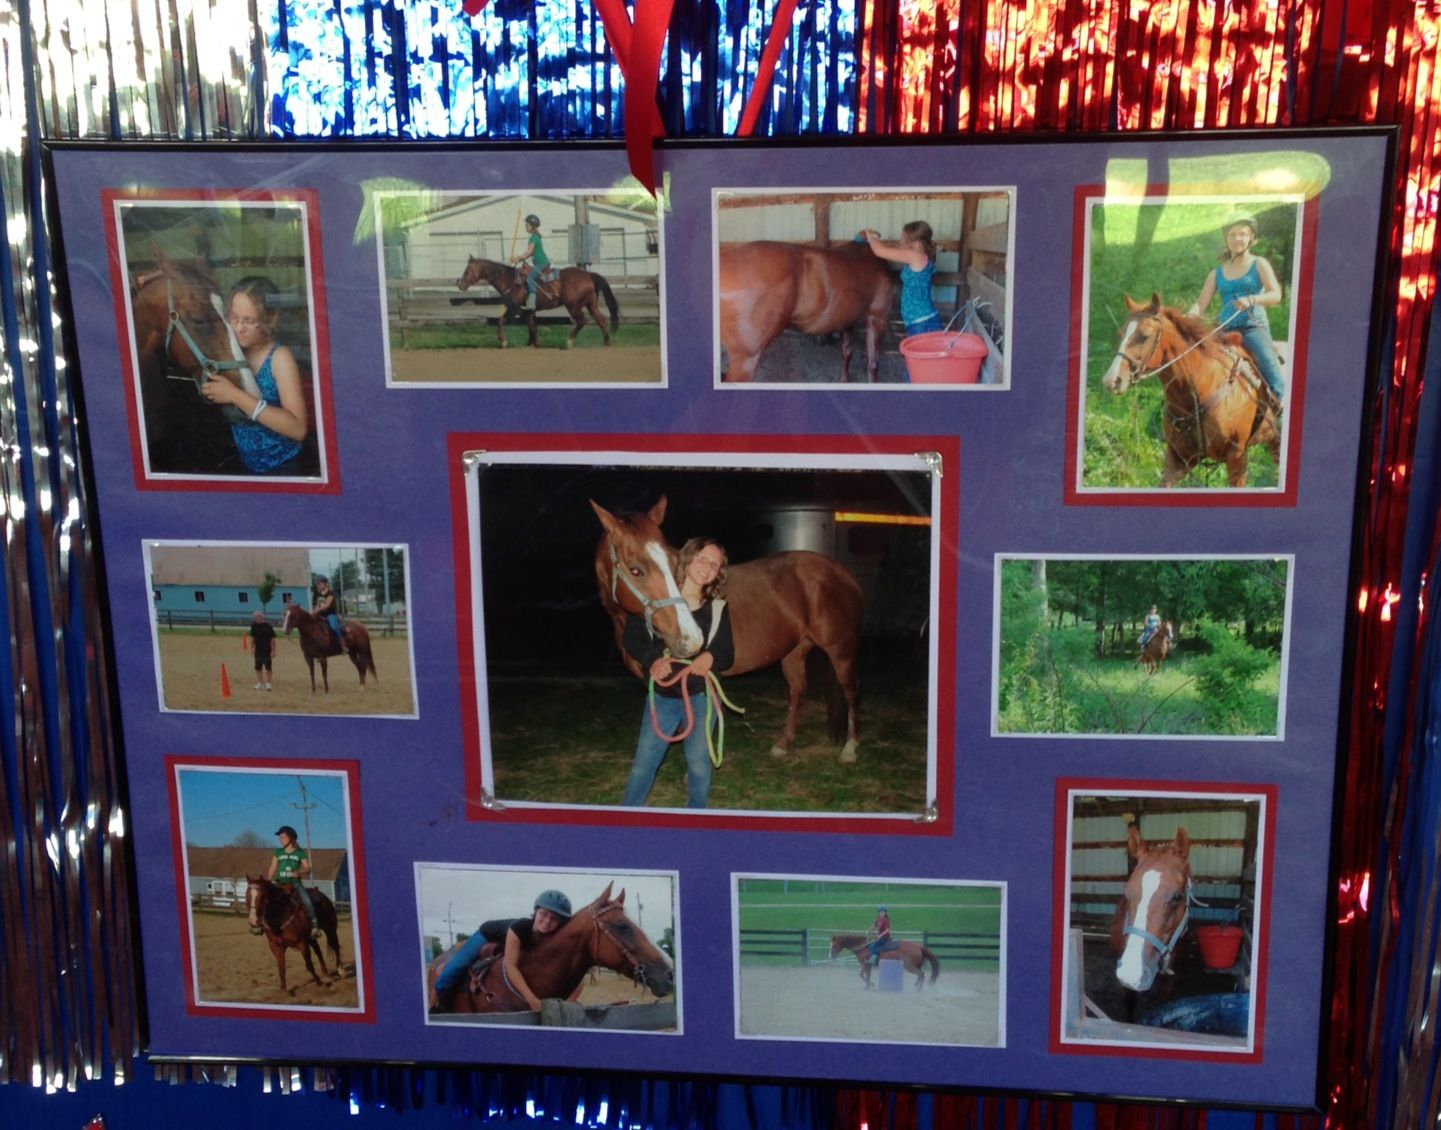 Designed This For Front Of Horse Stall Decorating At Local Fair